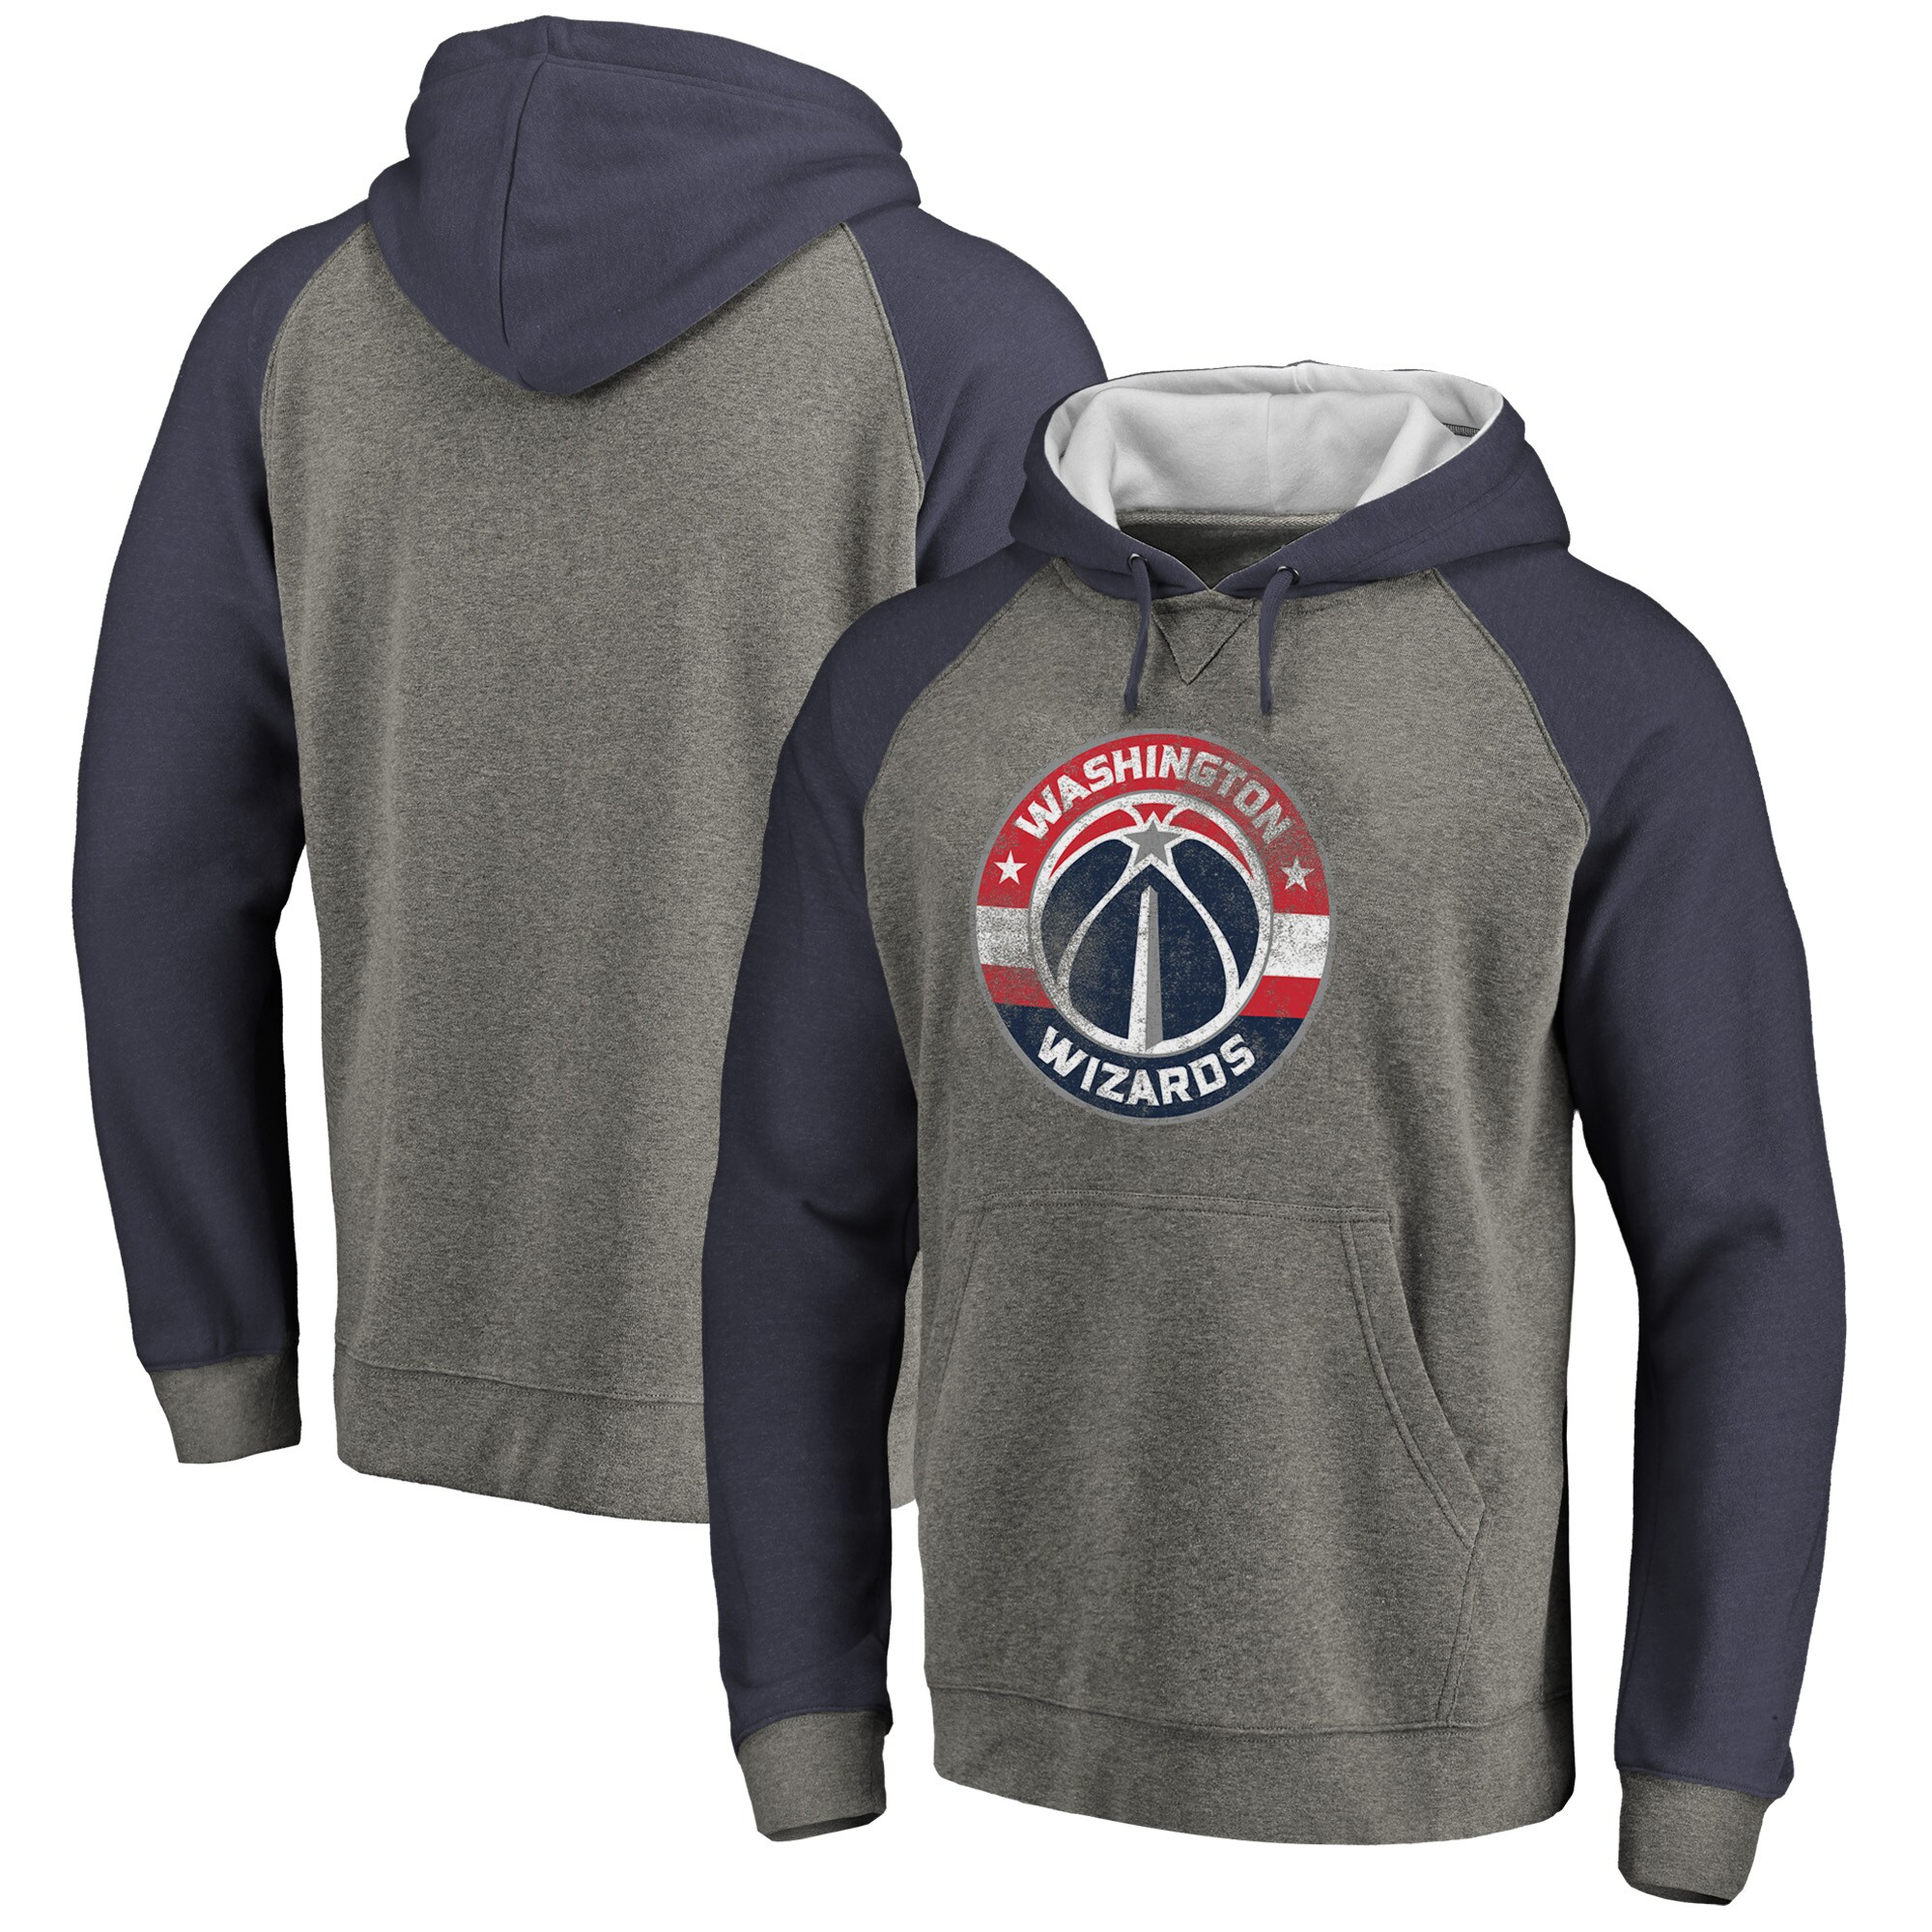 Washington Wizards Fanatics Branded Distressed Logo Tri-Blend Pullover Hoodie - Ash/Navy